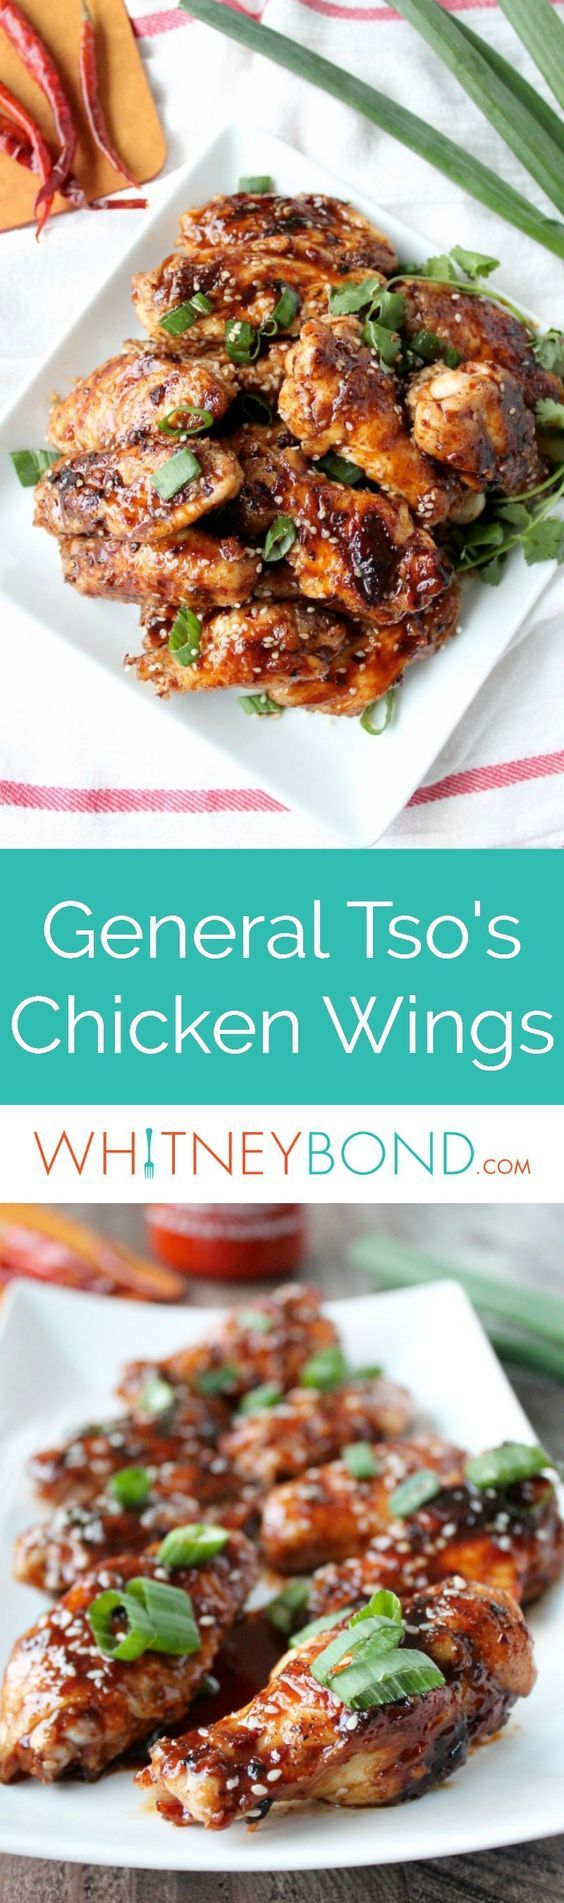 General Tso's Chicken Wings are a delicious twist on the Chinese favorite, they're the perfect appetizer for game day, grilling out or as a party appetizer!